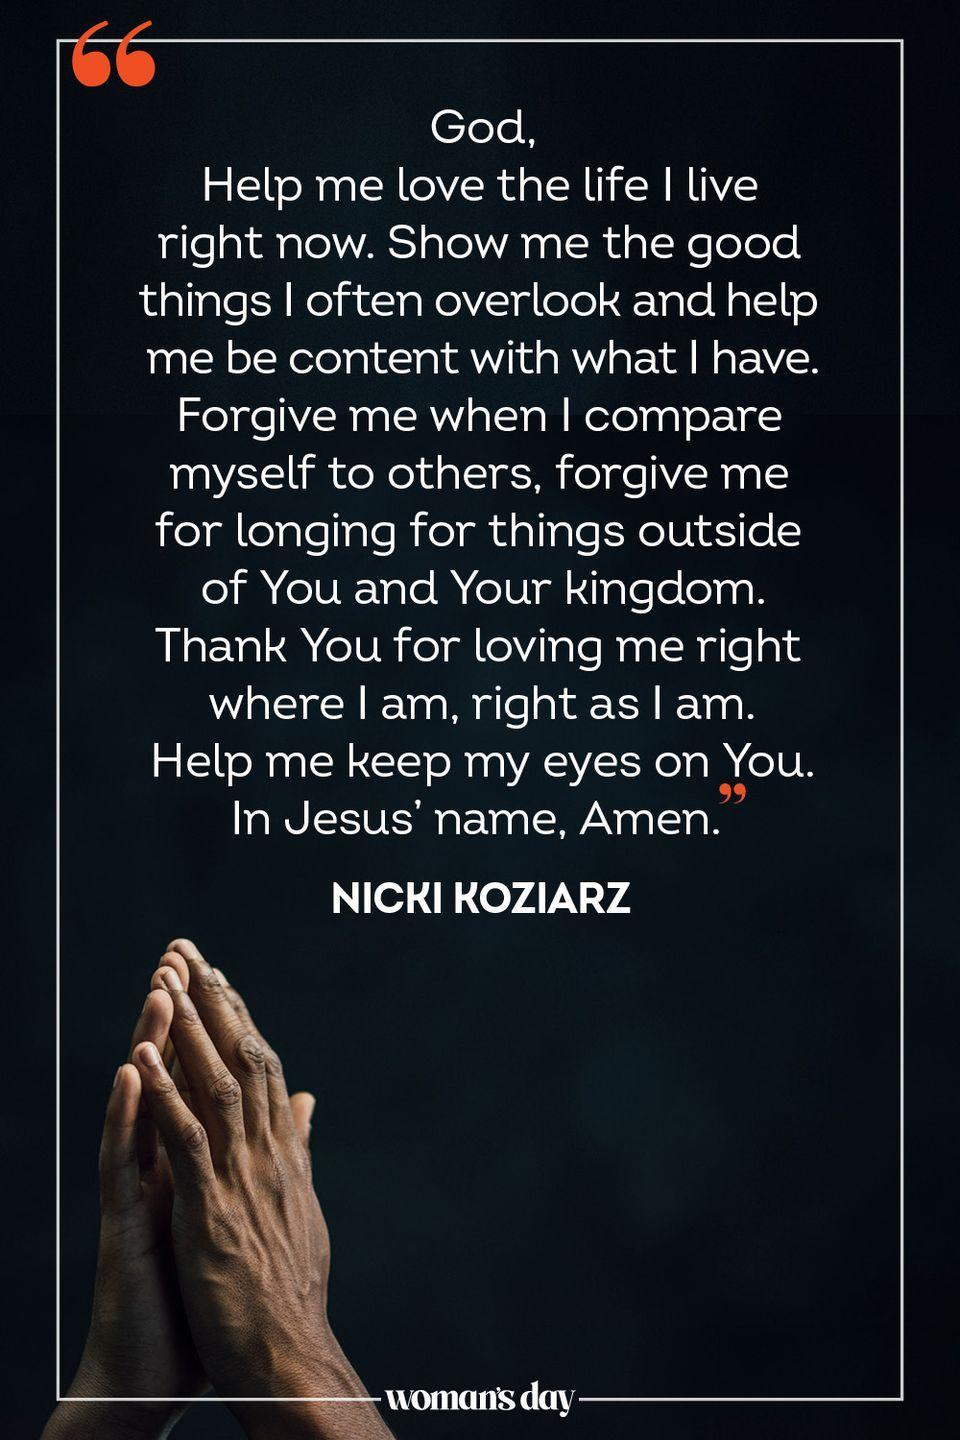 """<p>God, </p><p>Help me love the life I live right now. Show me the good things I often overlook and help me be content with what I have. Forgive me when I compare myself to others, forgive me for longing for things outside of You and Your kingdom. Thank You for loving me right where I am, right as I am. Help me keep my eyes on You. </p><p>In Jesus' name, Amen. </p><p>— <a href=""""https://www.oneplace.com/devotionals/your-daily-prayer/a-prayer-for-loving-the-life-you-have-your-daily-prayer-january-17-2019-11758483.html"""" rel=""""nofollow noopener"""" target=""""_blank"""" data-ylk=""""slk:Nicki Koziarz"""" class=""""link rapid-noclick-resp"""">Nicki Koziarz</a></p>"""